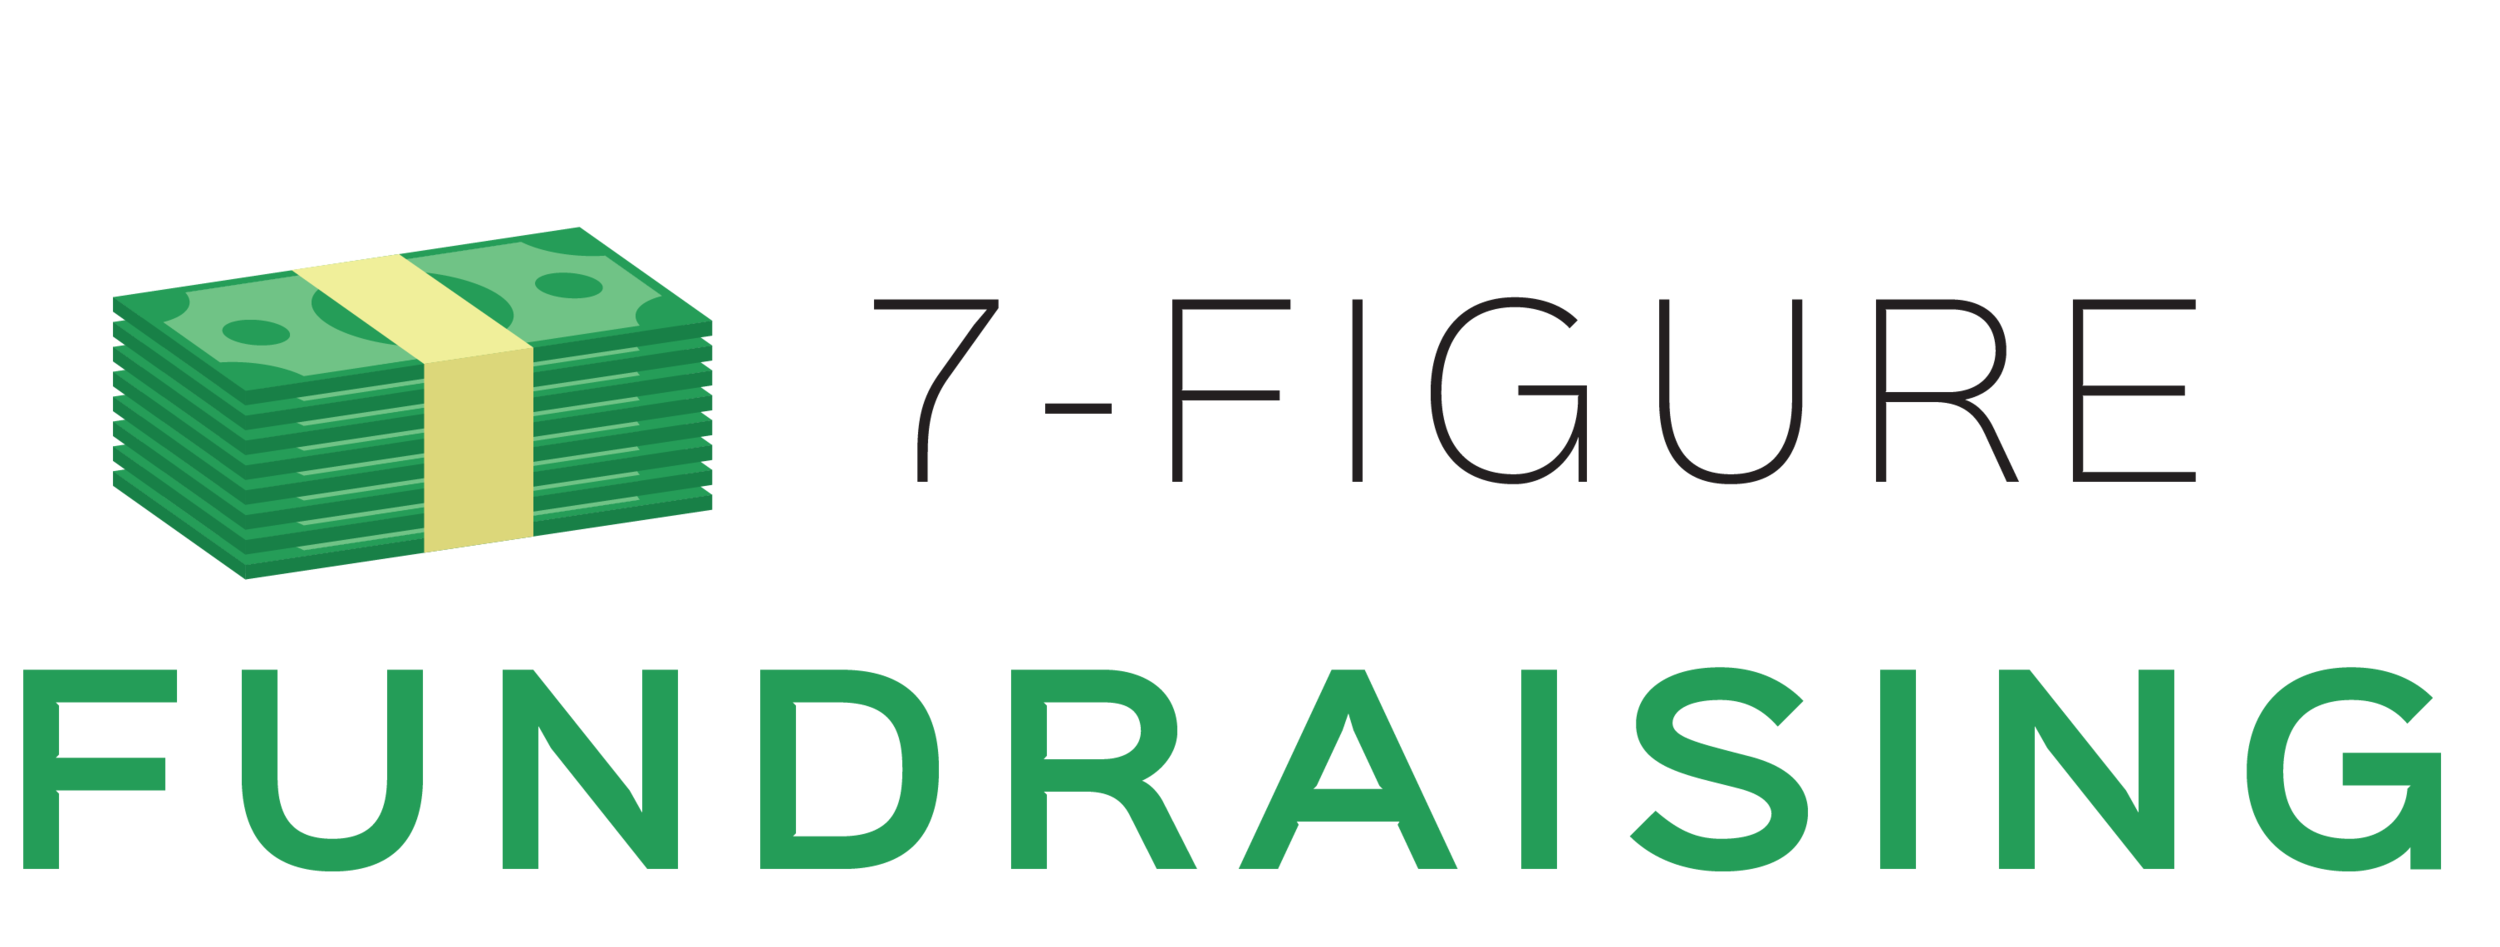 7 Figure Fundraising Logo.png